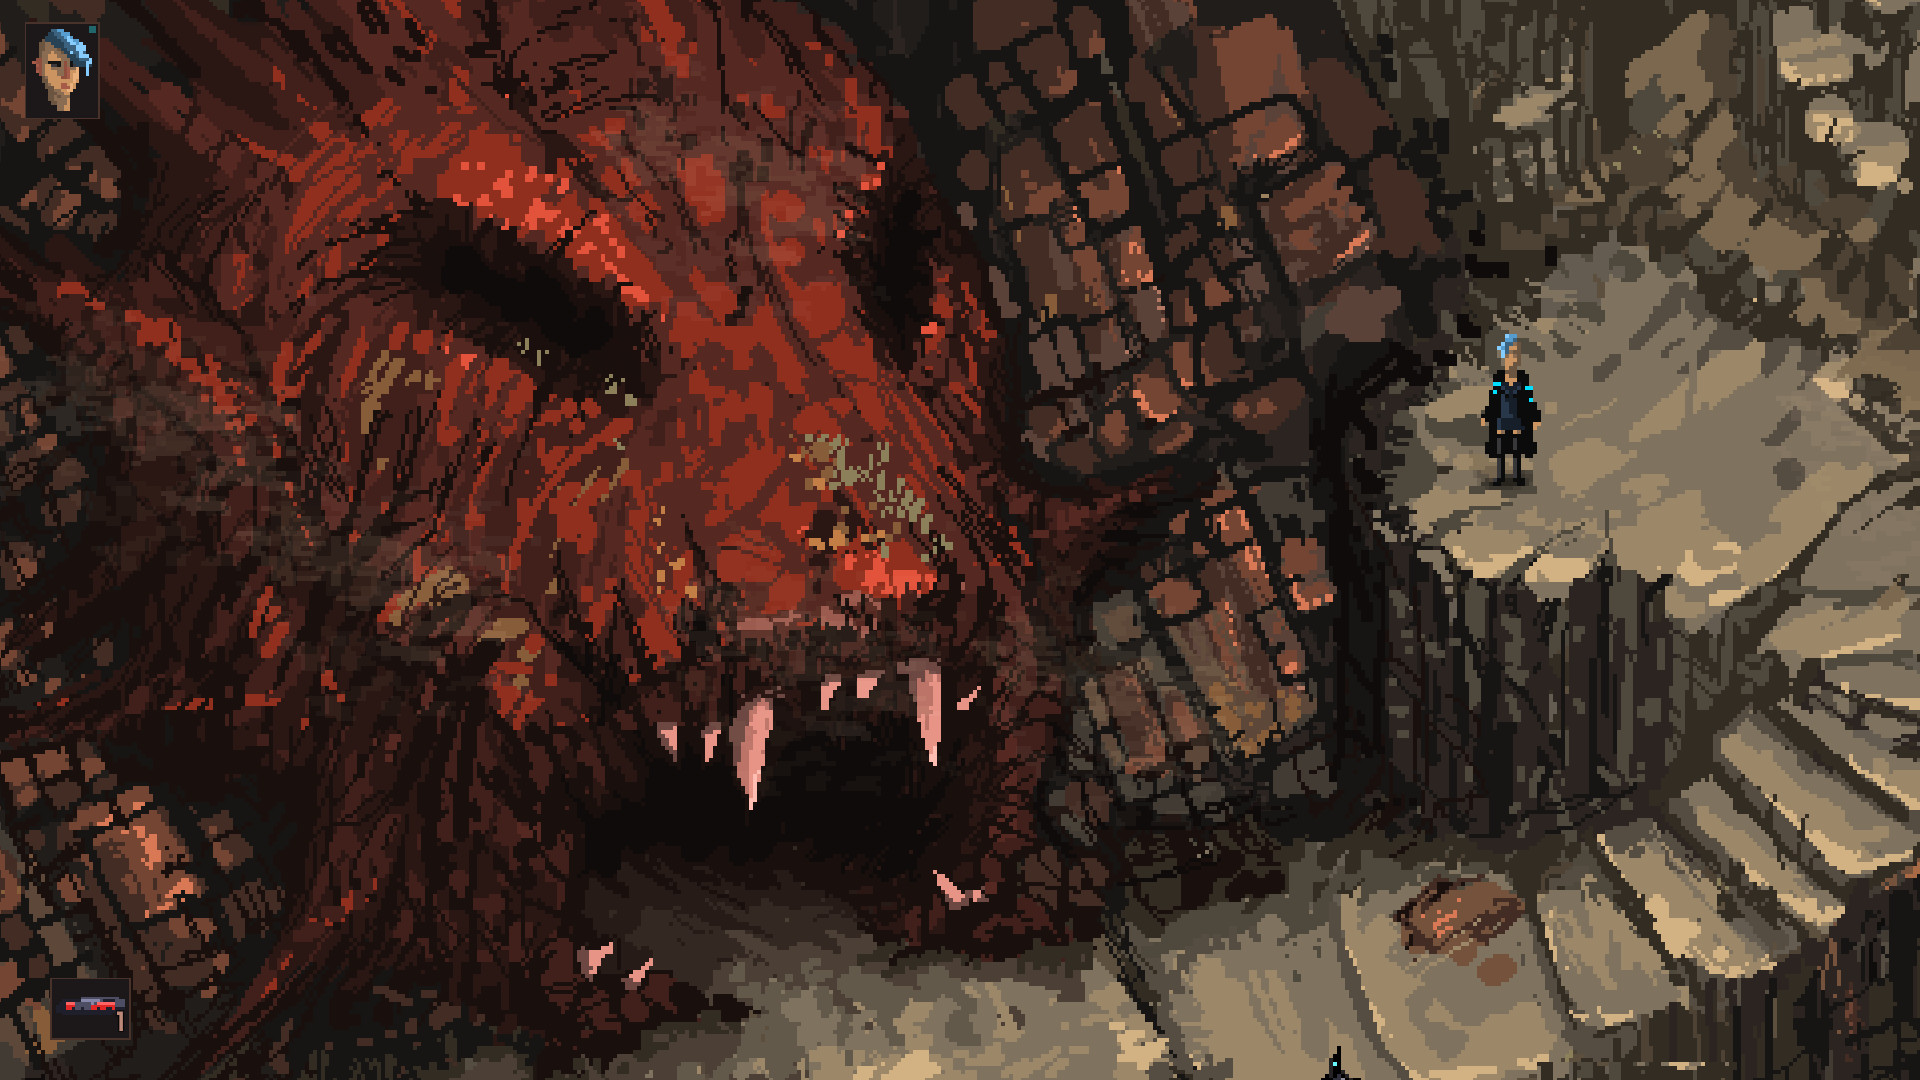 Death Trash, a stylish and nightmarish take on classic Fallout, is now on Steam